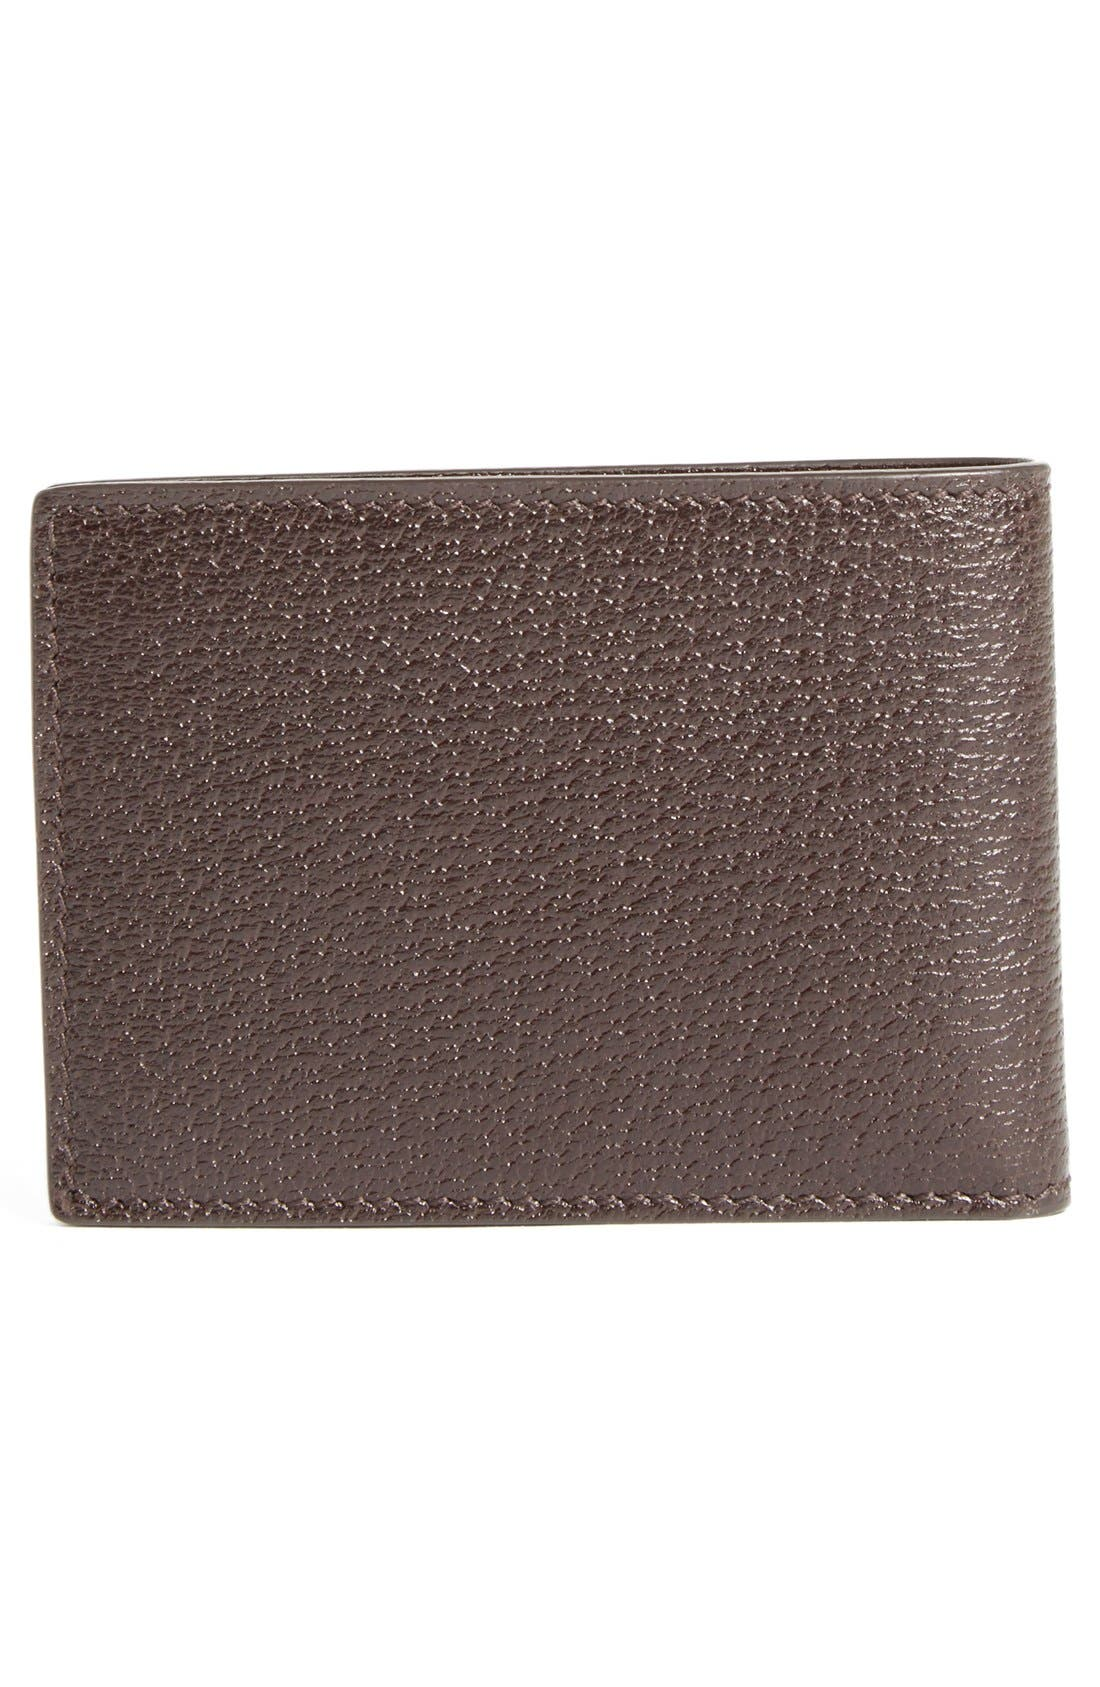 Marmont Leather Wallet,                             Alternate thumbnail 4, color,